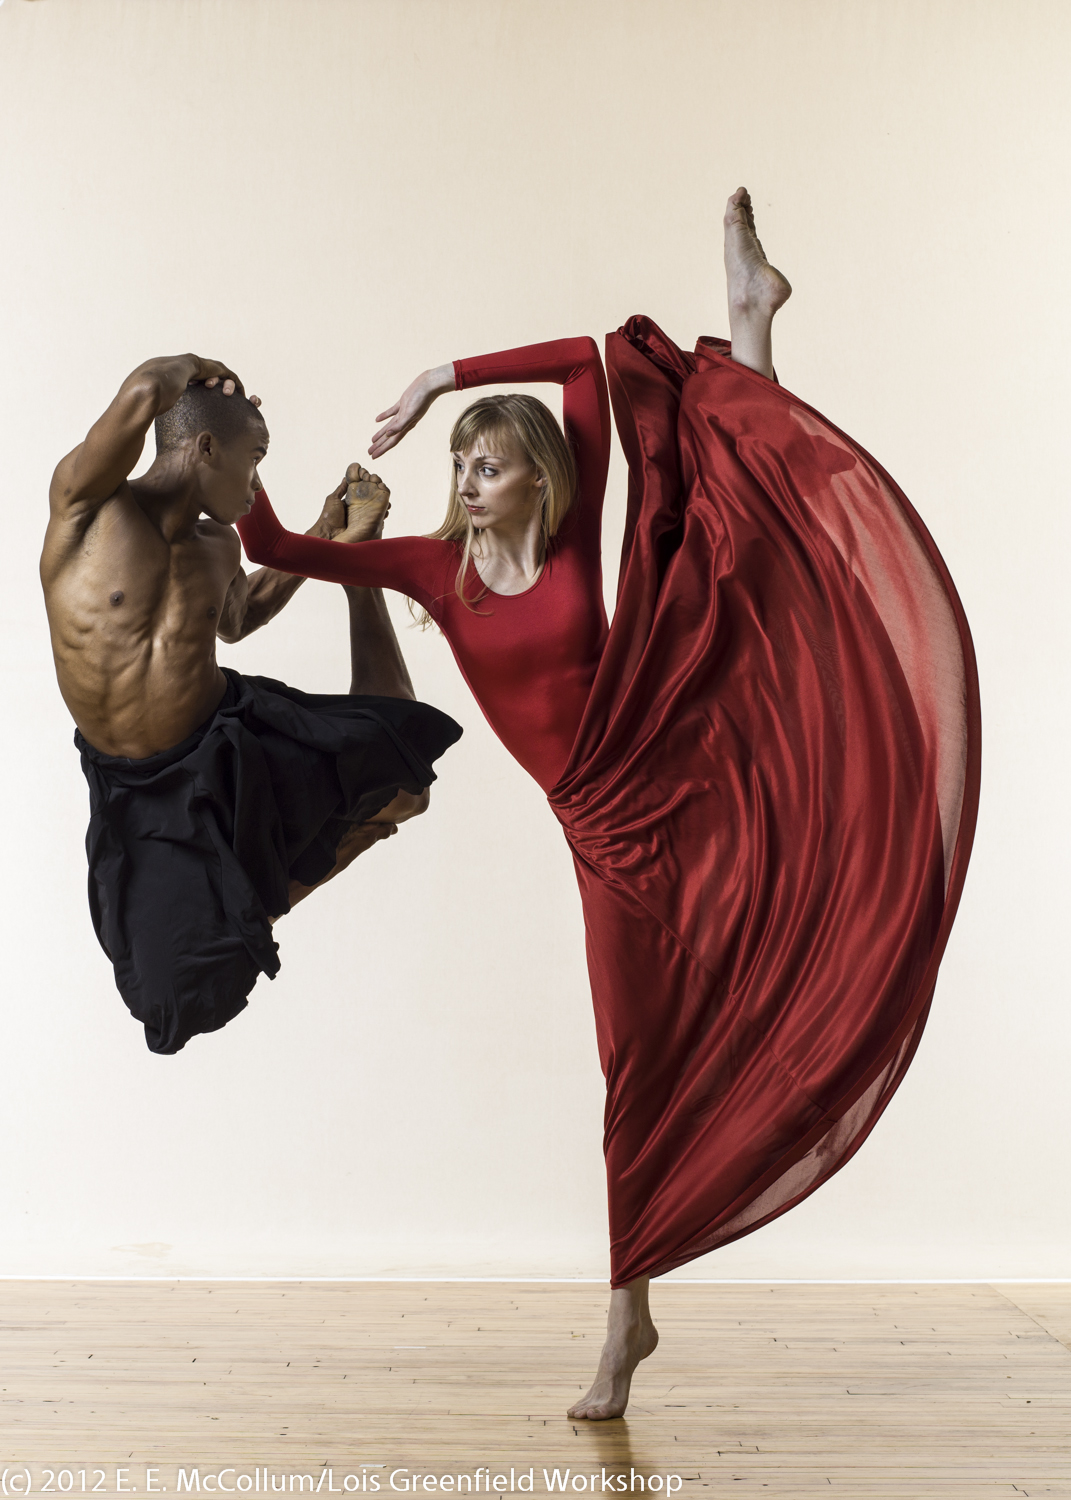 Dancers Edward Spots and Lindsey Miller at Lois Greenfield Workshop - NYC